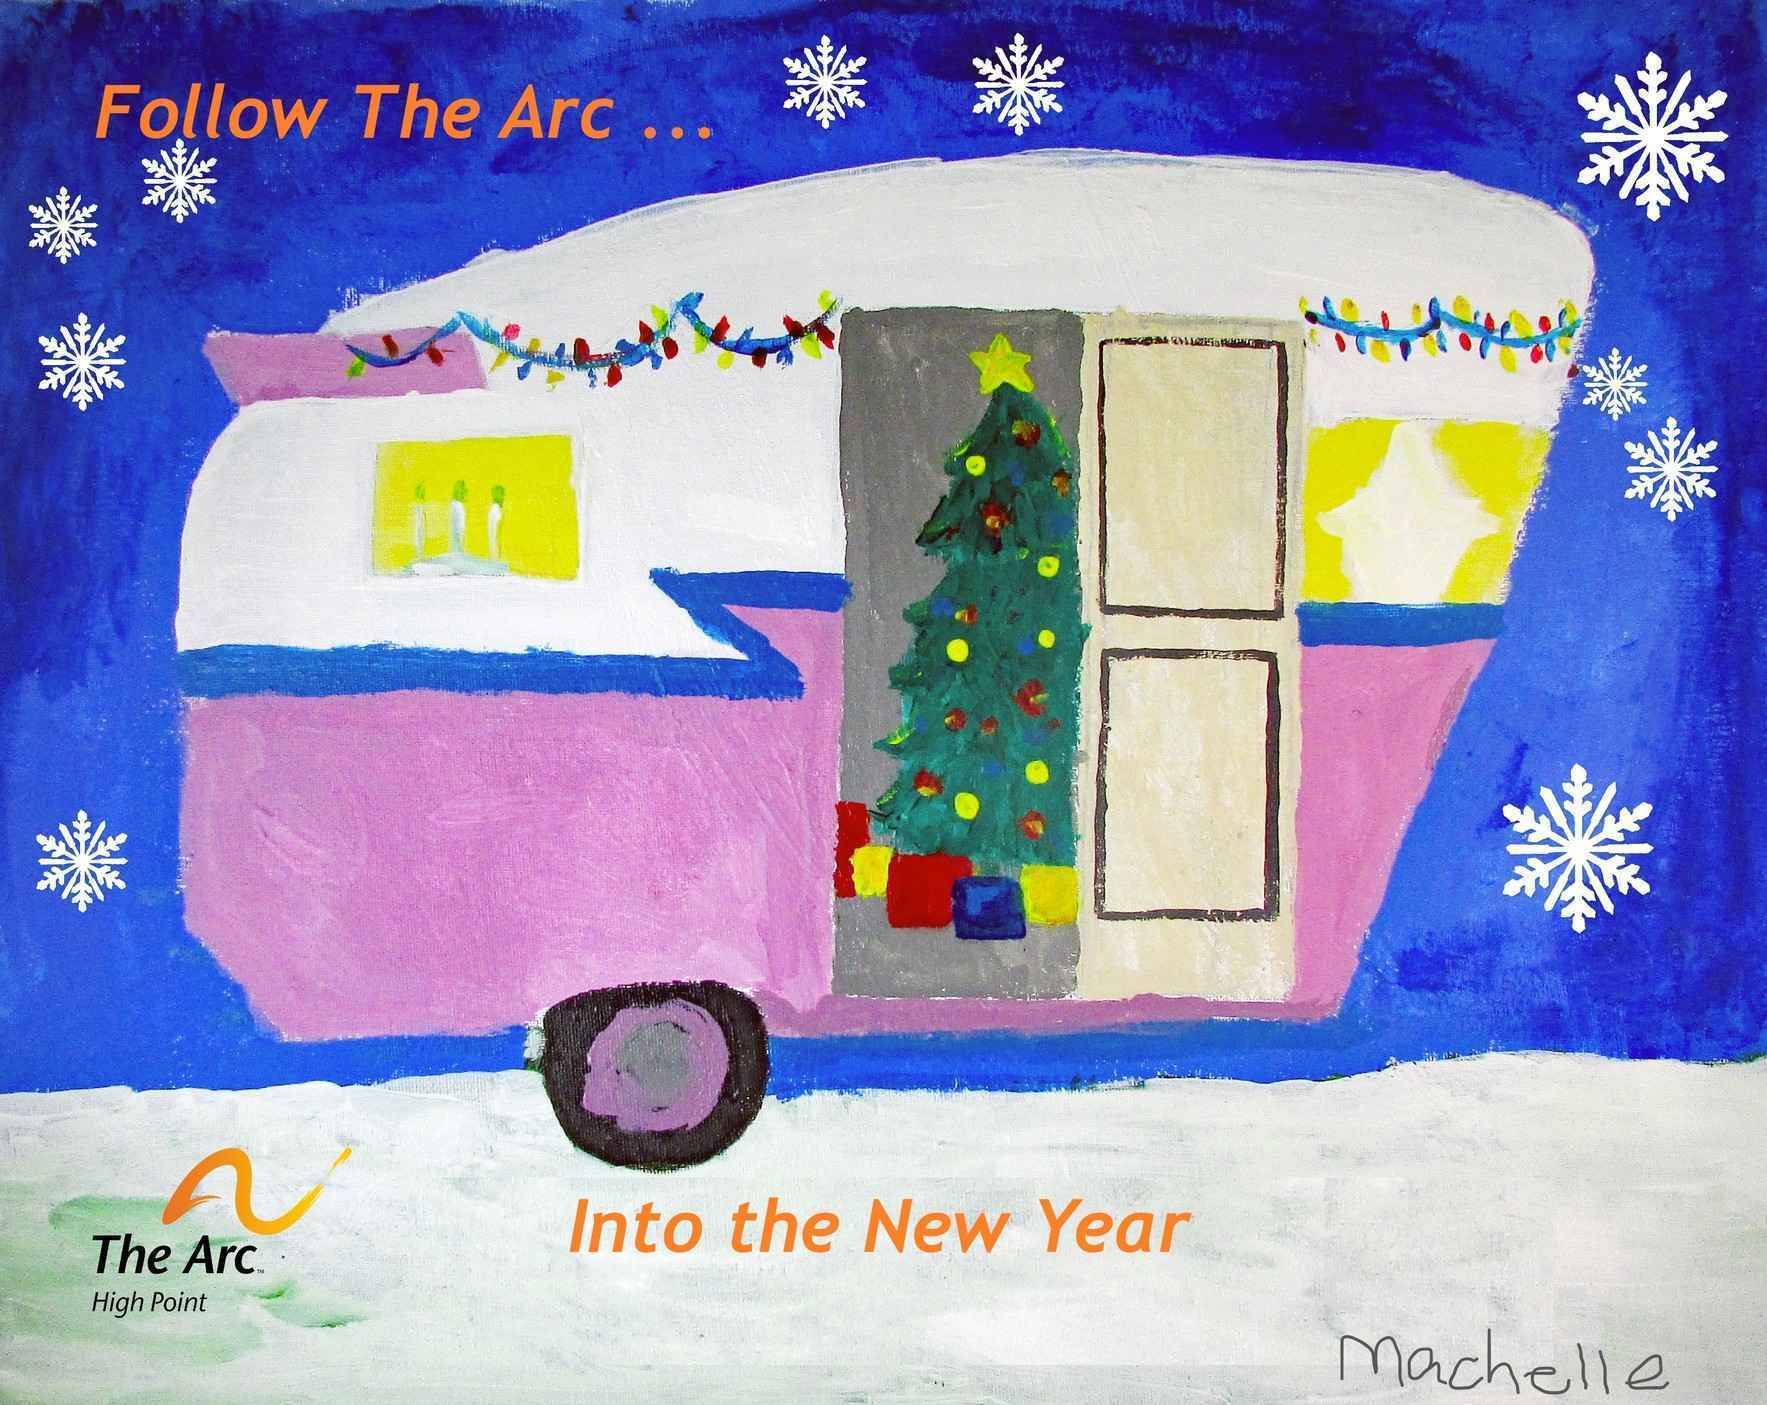 Follow The Arc into the New Year...Support People with Intellectual and Developmental Disabilities in Our Community image